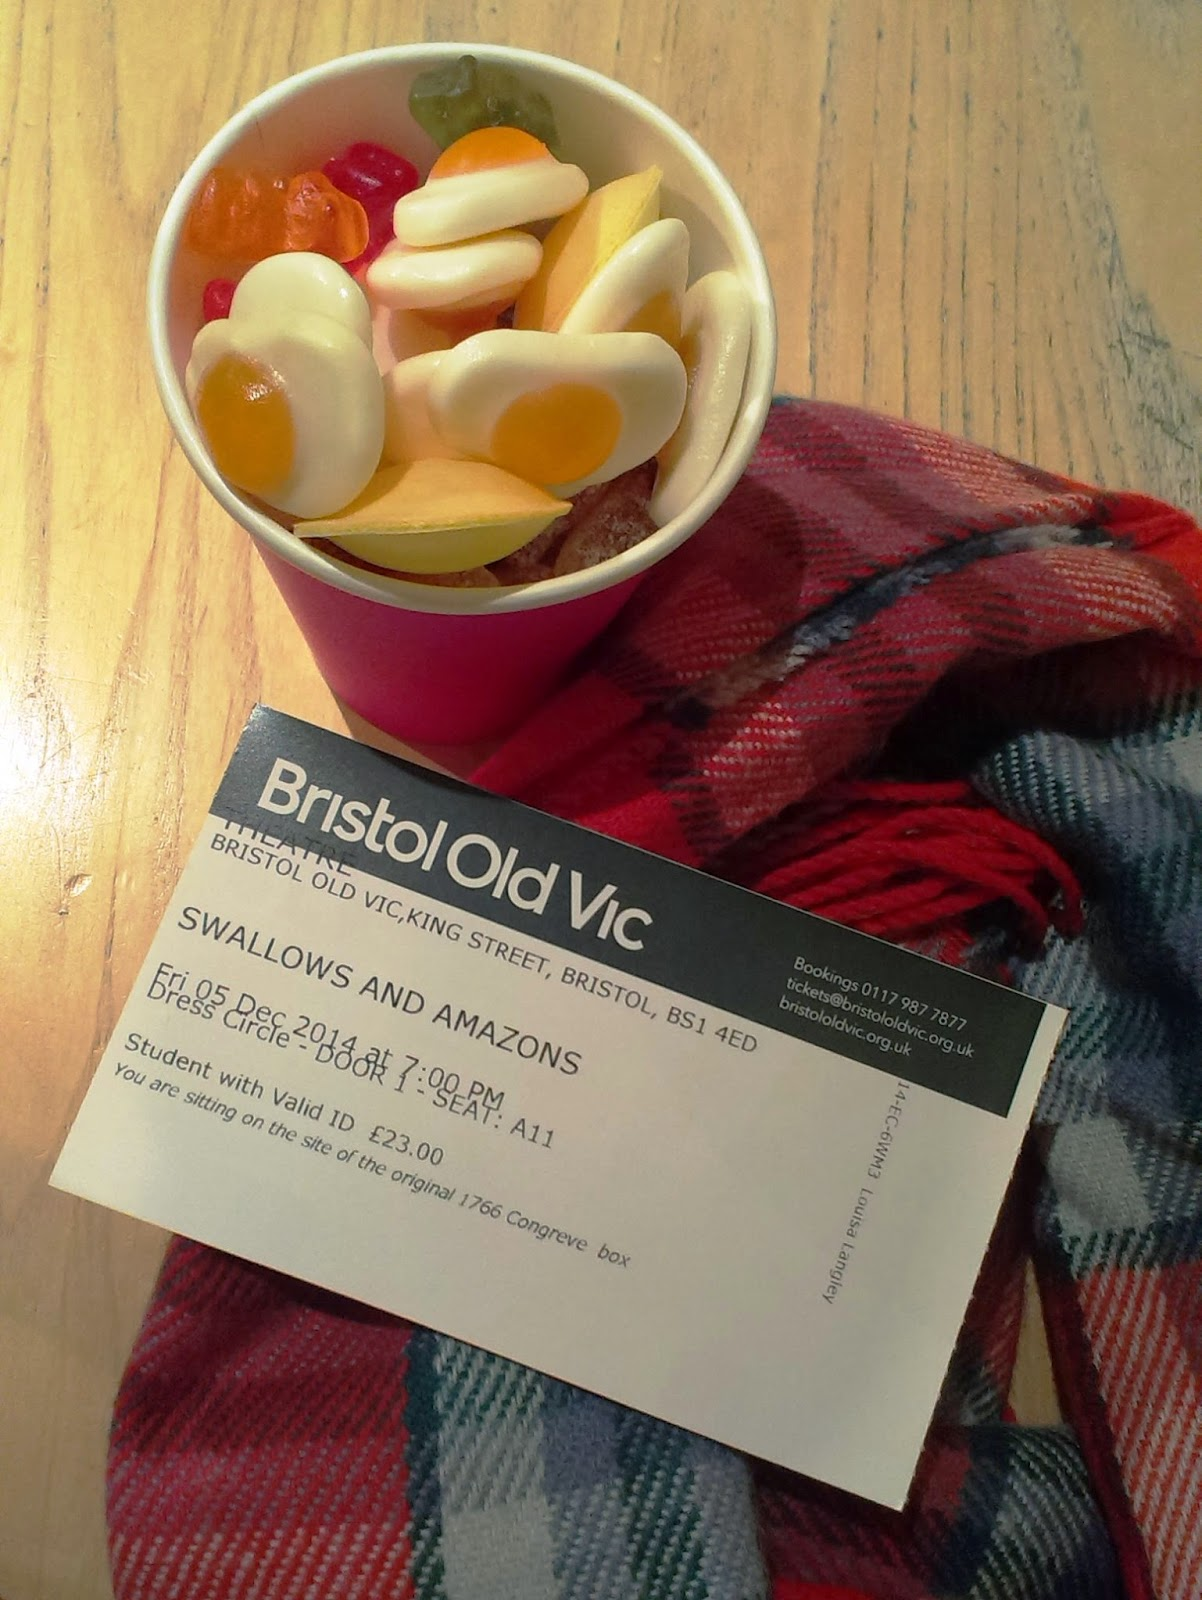 Bristol Old Vic sweets